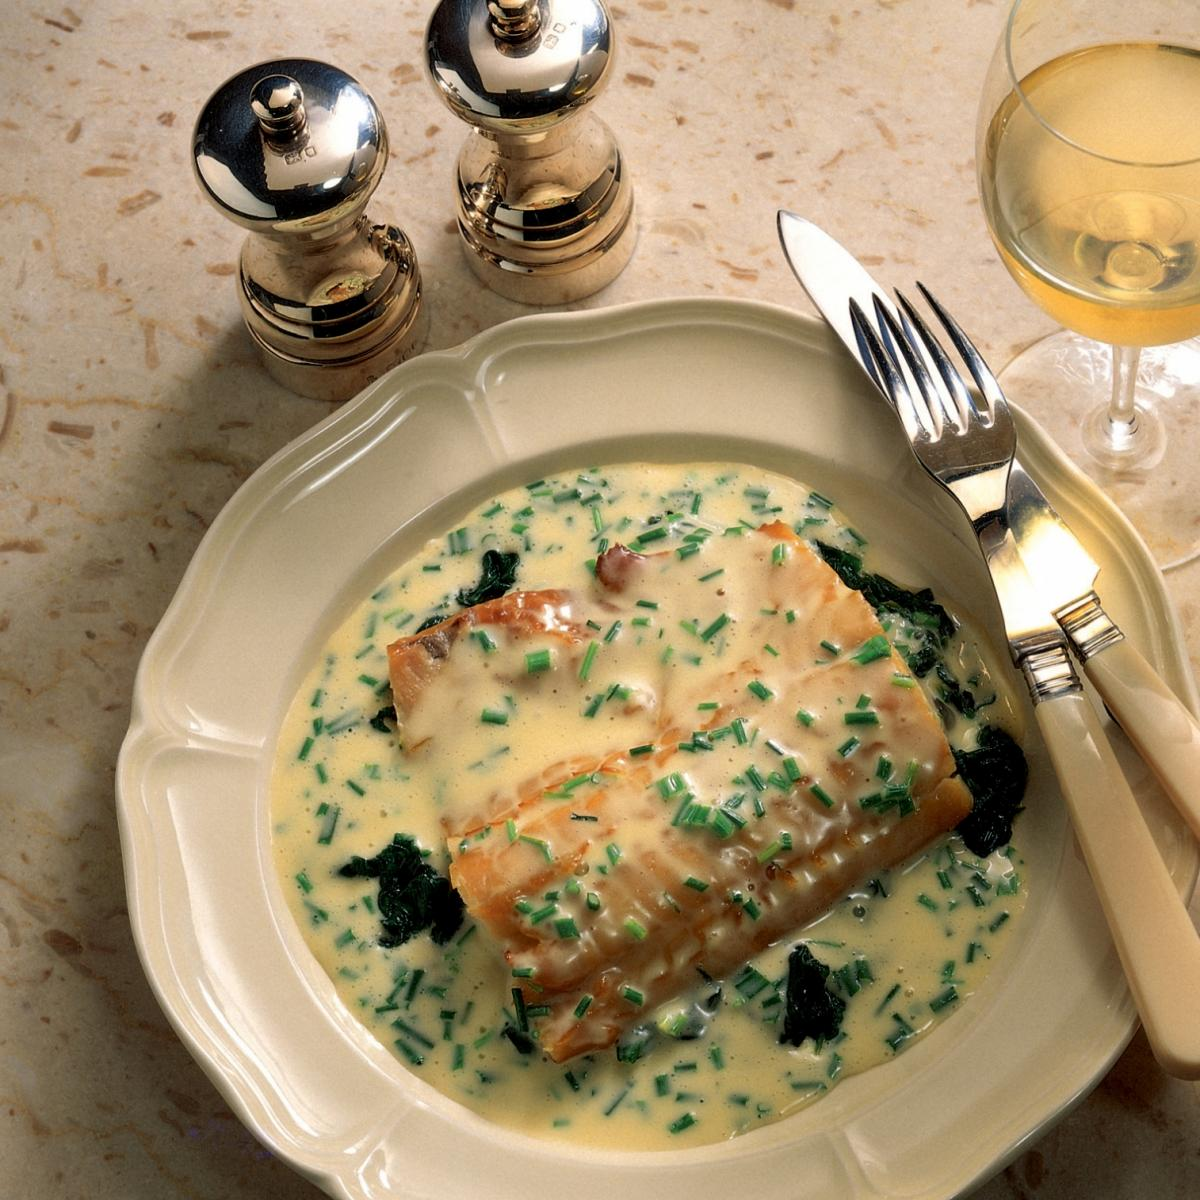 A picture of Delia's Smoked Haddock with Spinach and Chive Butter Sauce recipe